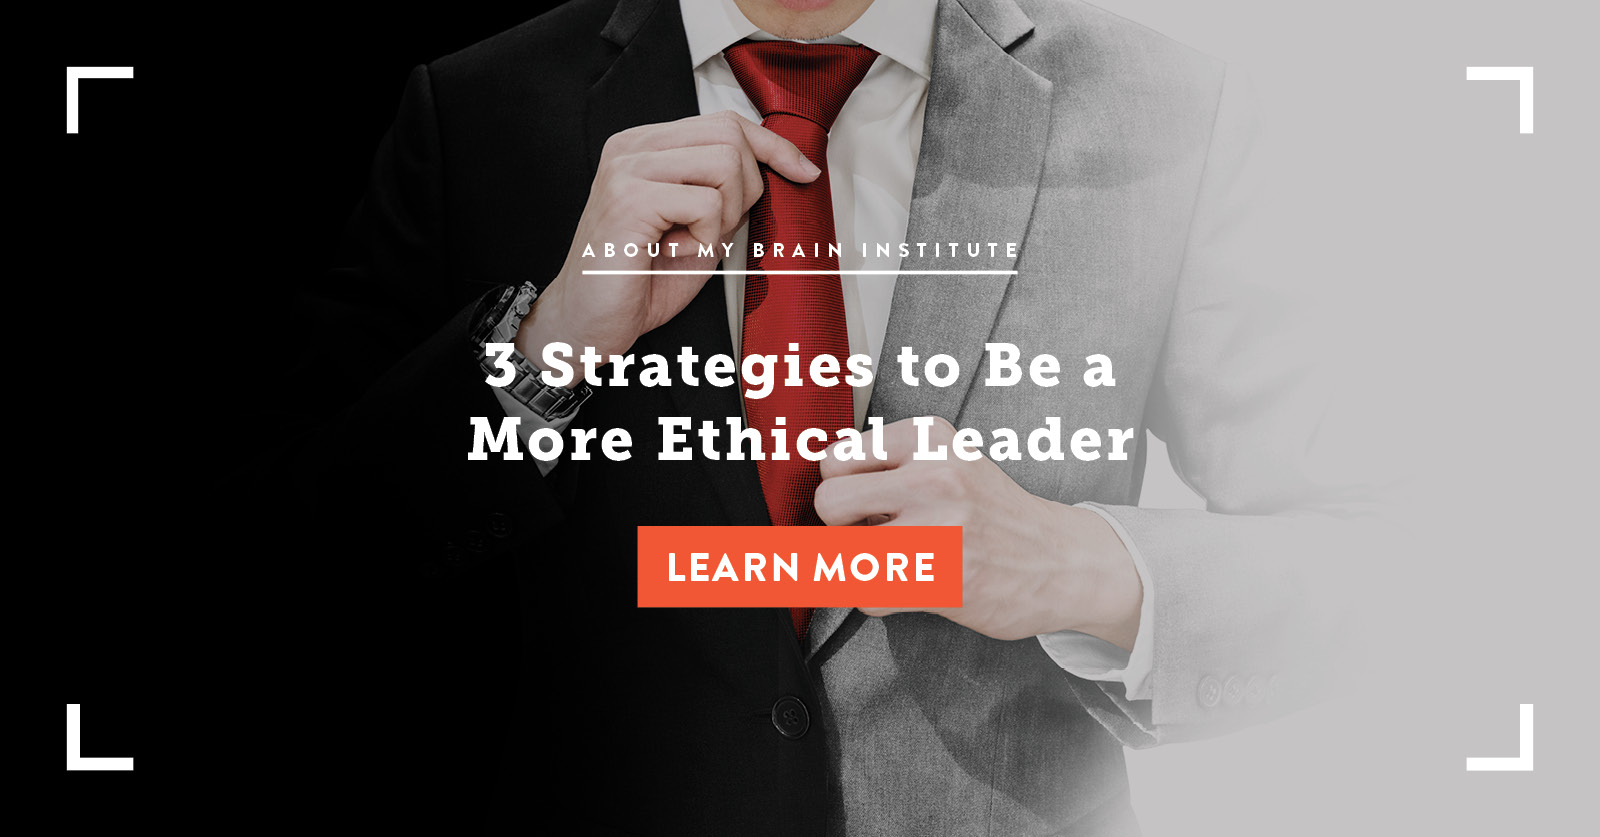 3 Strategies to Be a More Ethical Leader